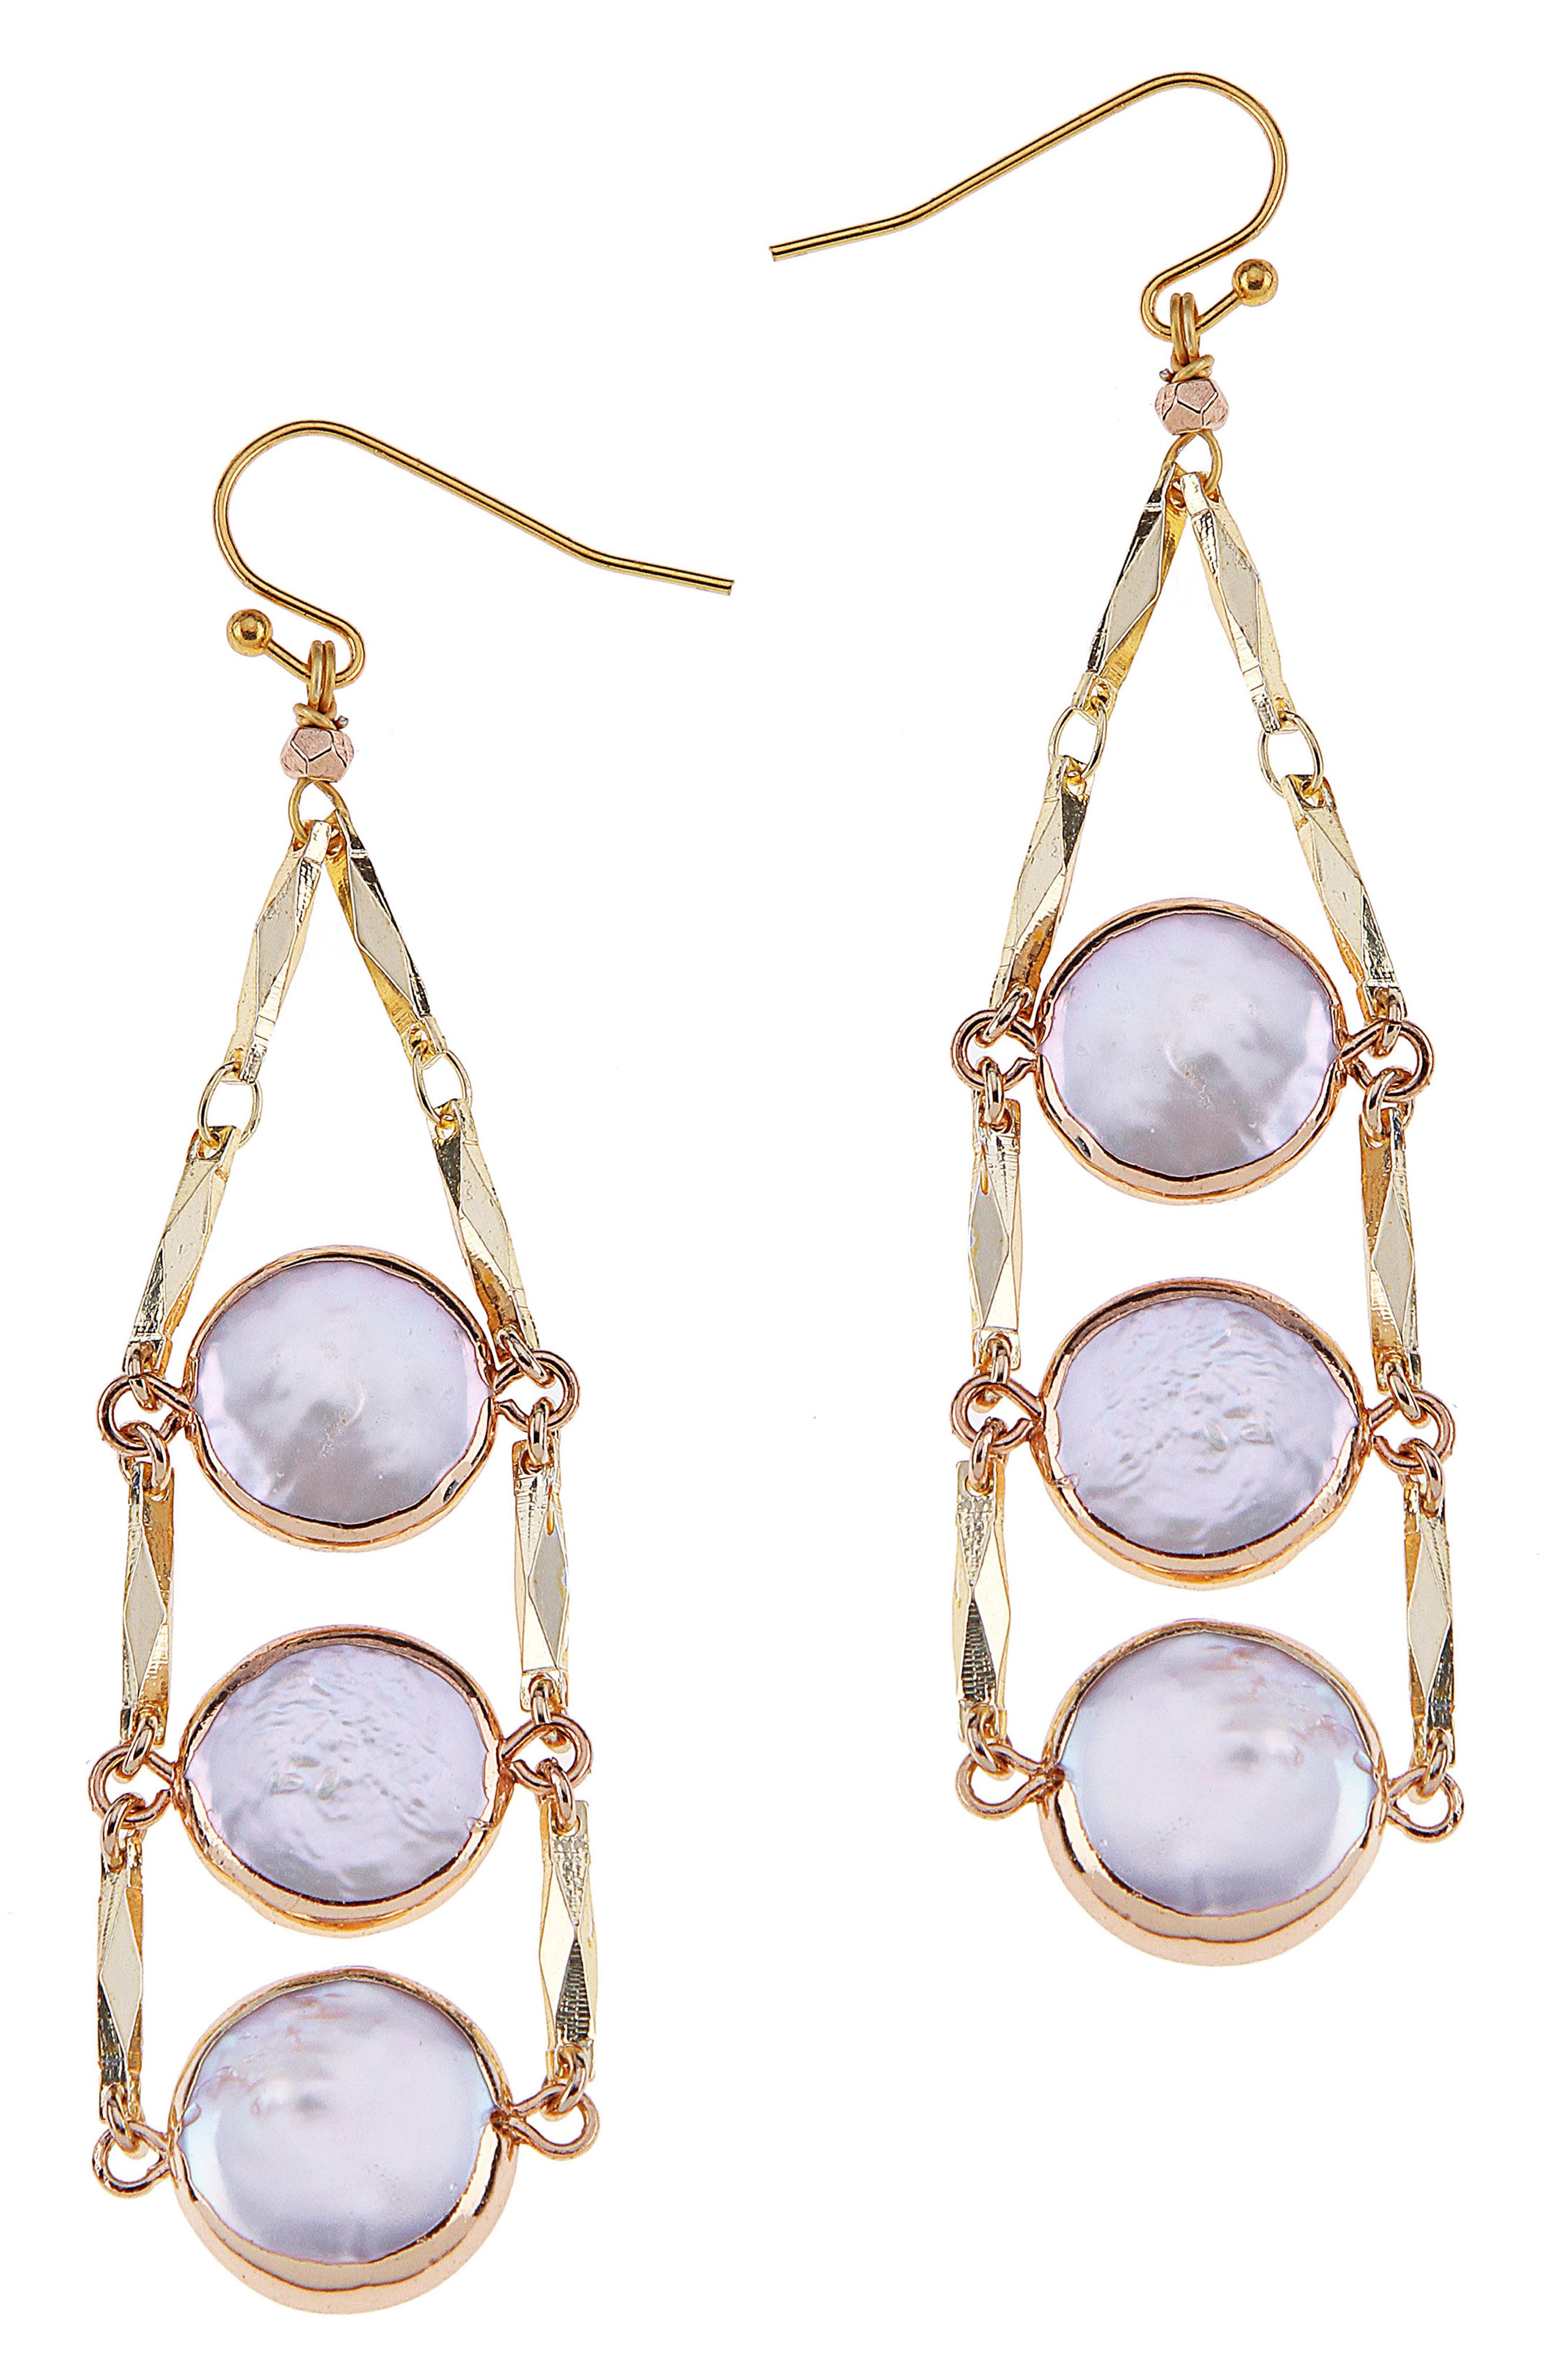 Triple Coin Freshwater Pearl Drop Earrings,                             Main thumbnail 1, color,